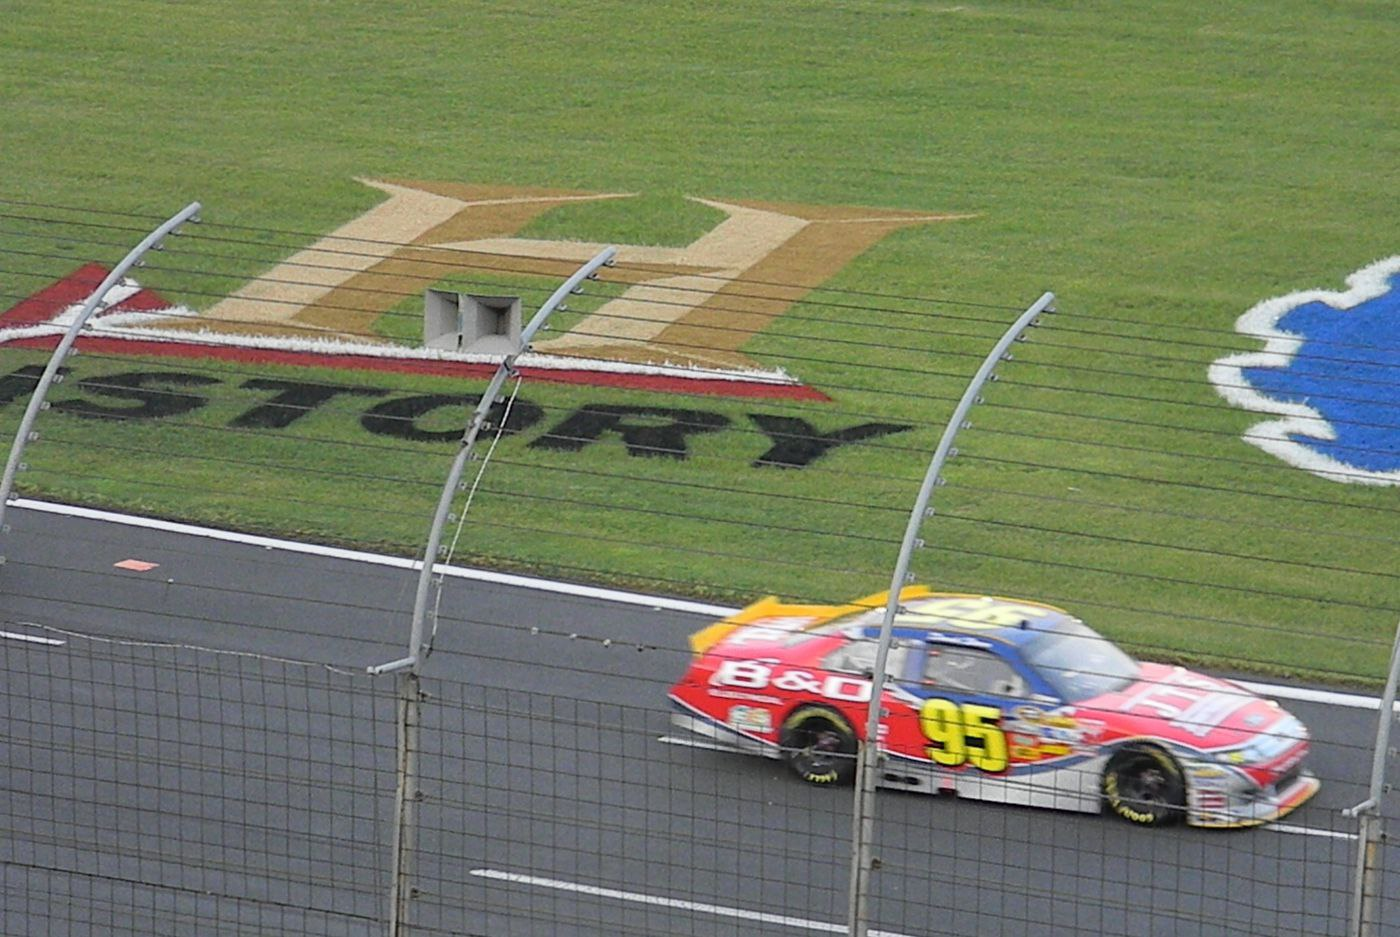 Lessons Learned from the NASCAR Team Ransomware Attack